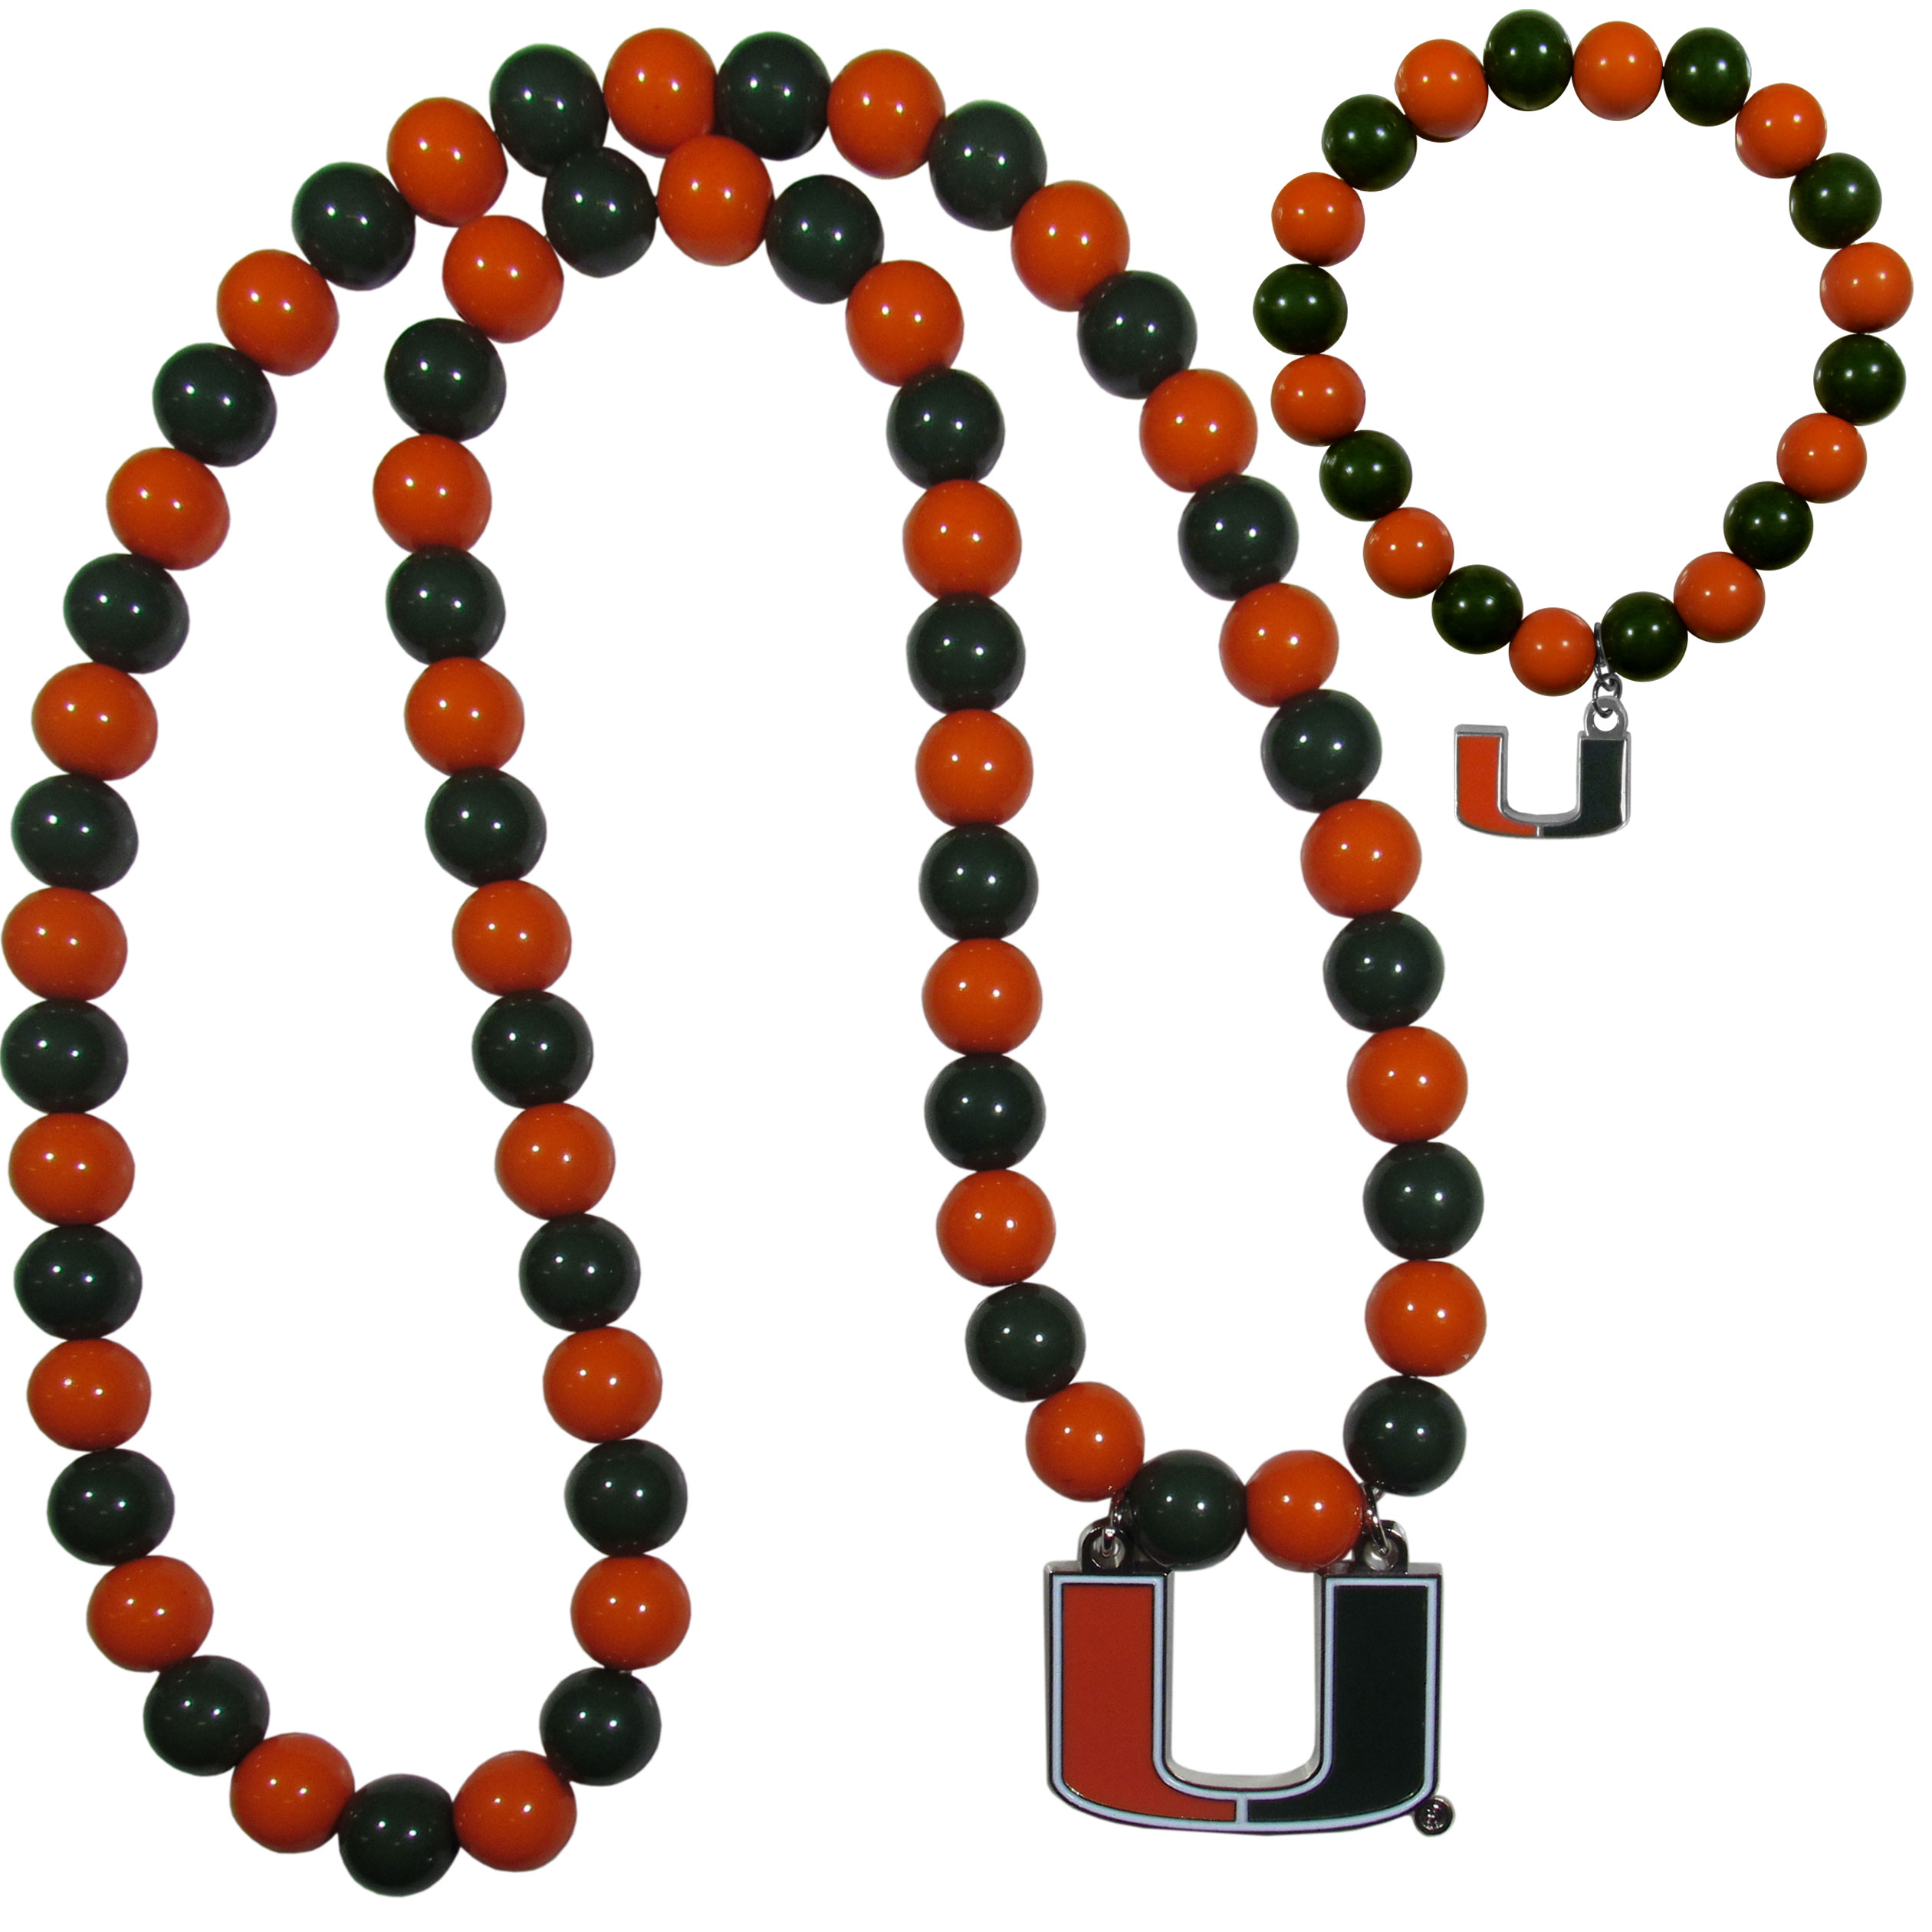 Miami Hurricanes Fan Bead Necklace and Bracelet Set - These fun and colorful Miami Hurricanes fan bead jewelry pieces are an eyecatching way to show off your team spirit. The striking necklace is a 24 inch string of alternating team colored beads with a large team pendant. The mathcing bracelet has alternating team colored beads on a stretch cord and features a matching team charm.